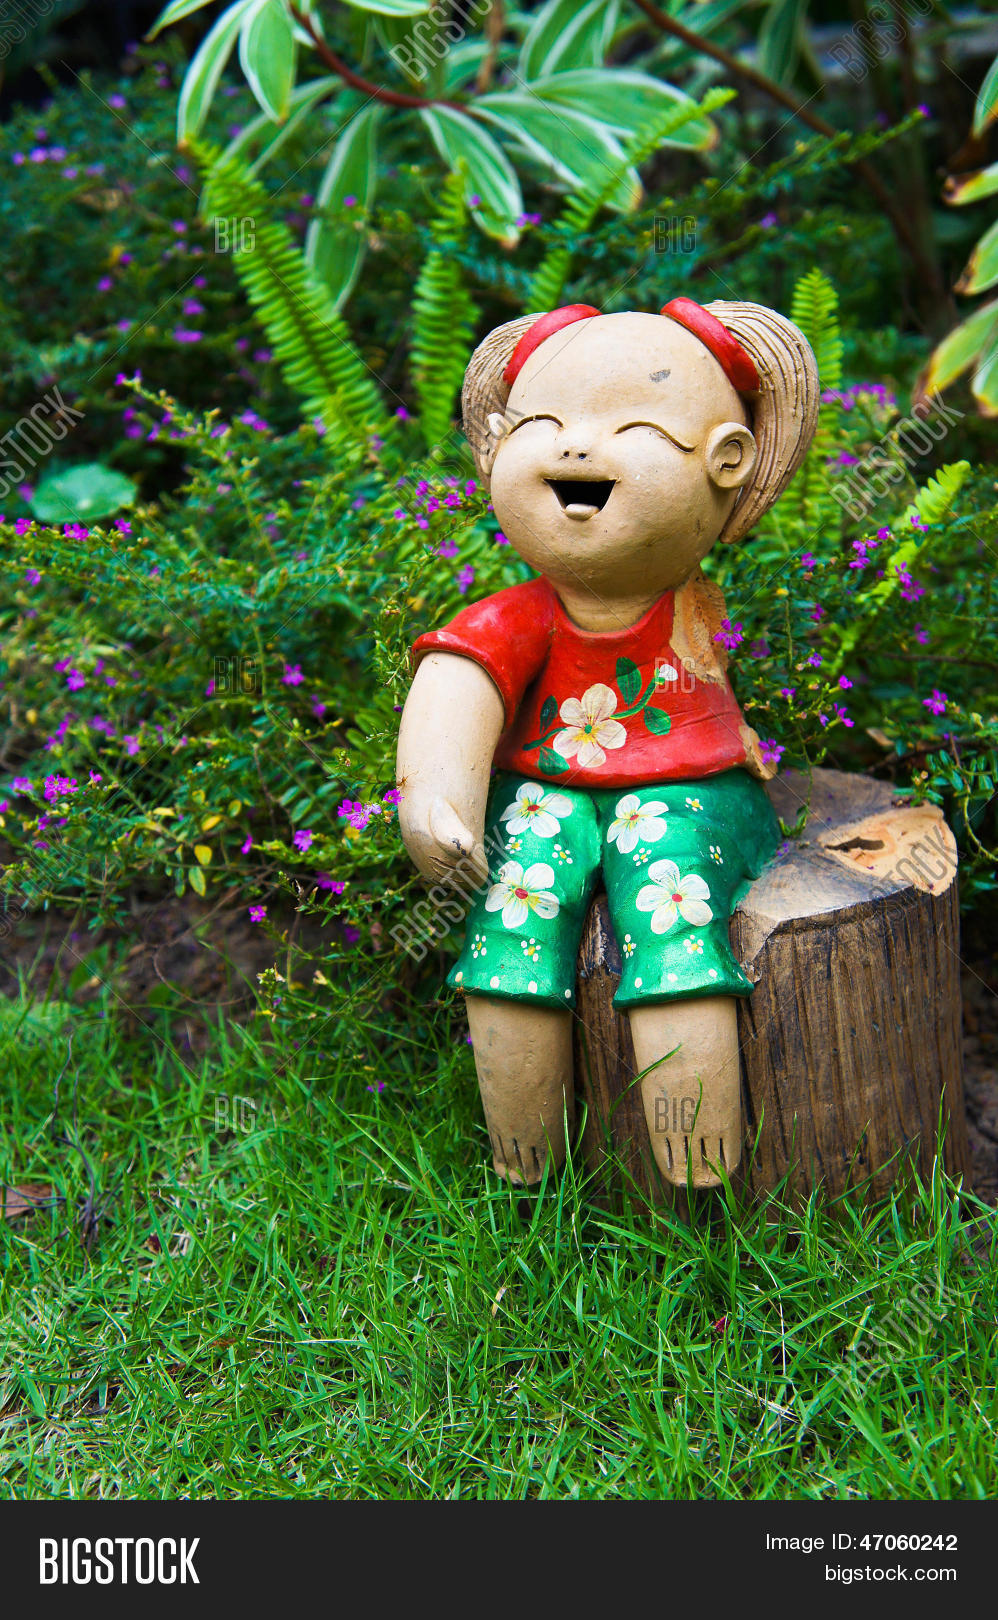 ceramic dolls in the garden - The Doll In The Garden